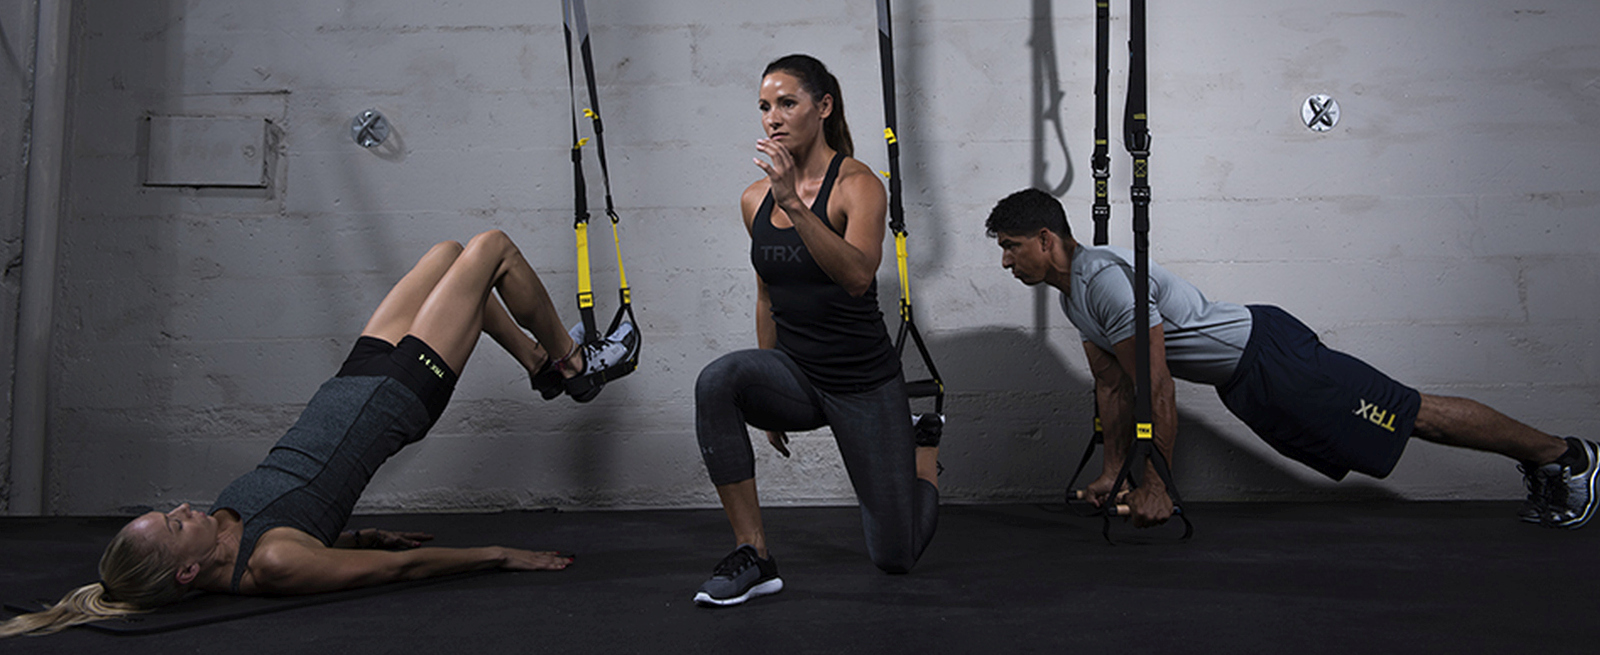 trx_duotrainer_group3+%281%29_1600.jpg